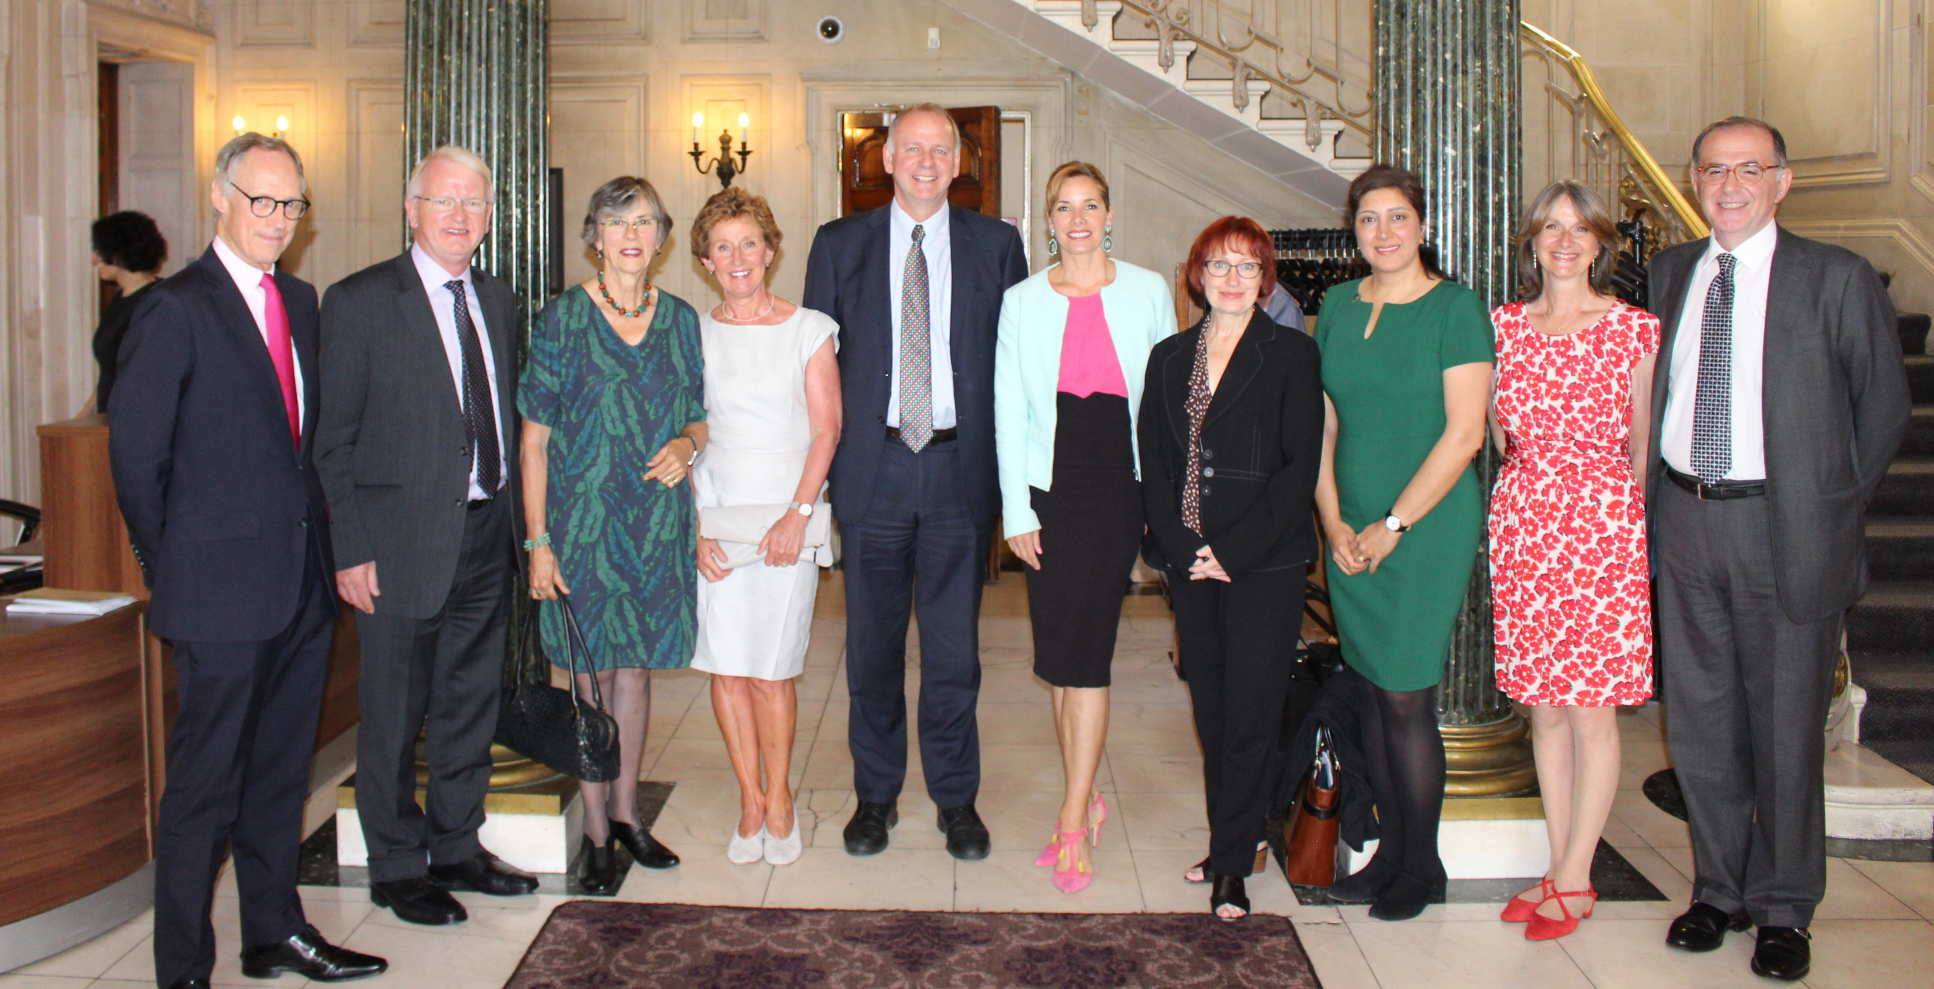 Professor Stirling with Royal Academy of Dance President Darcey Bussell (centre)